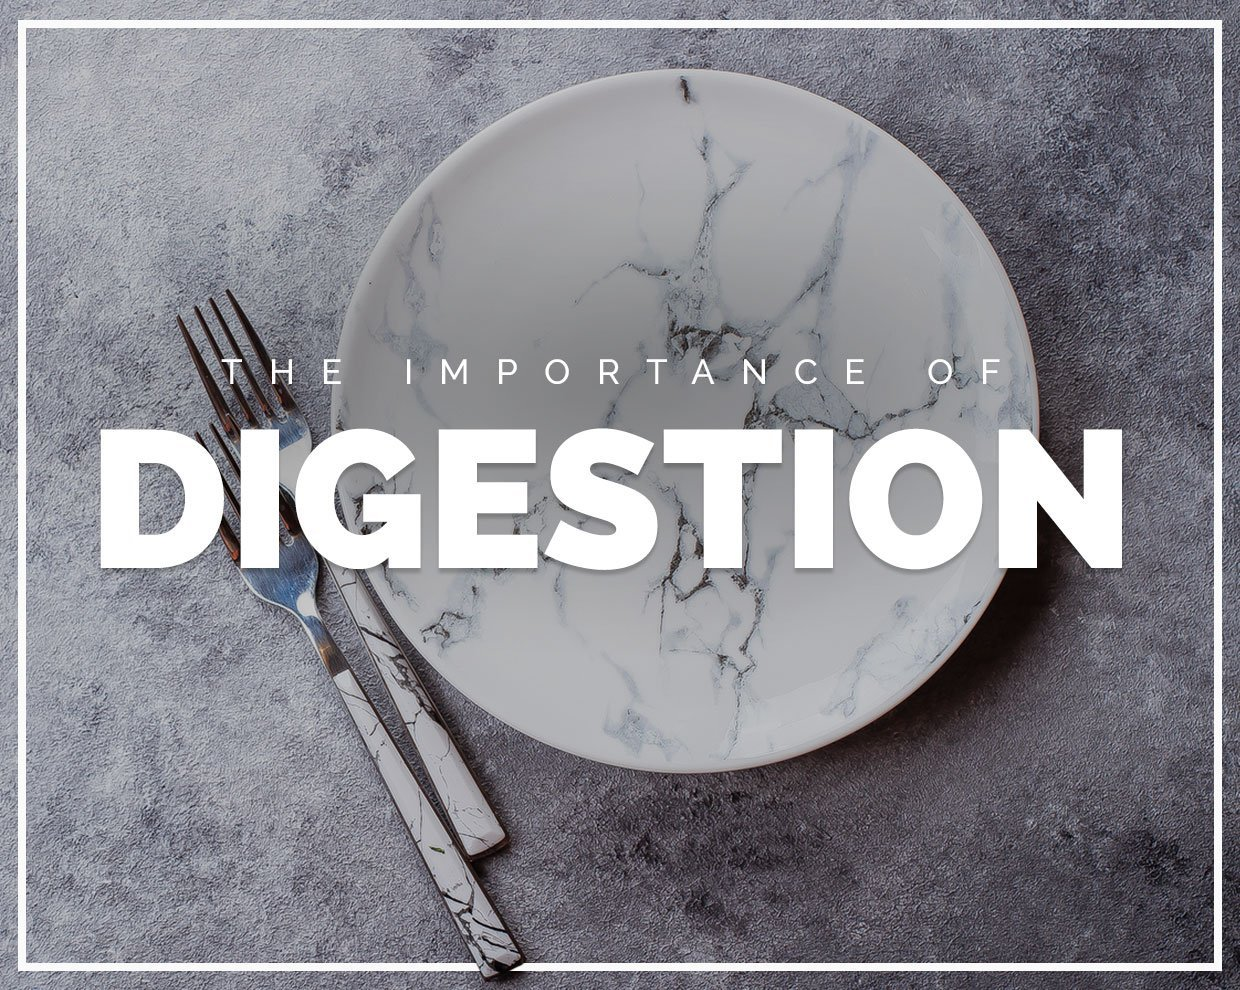 The Importance of Digestion